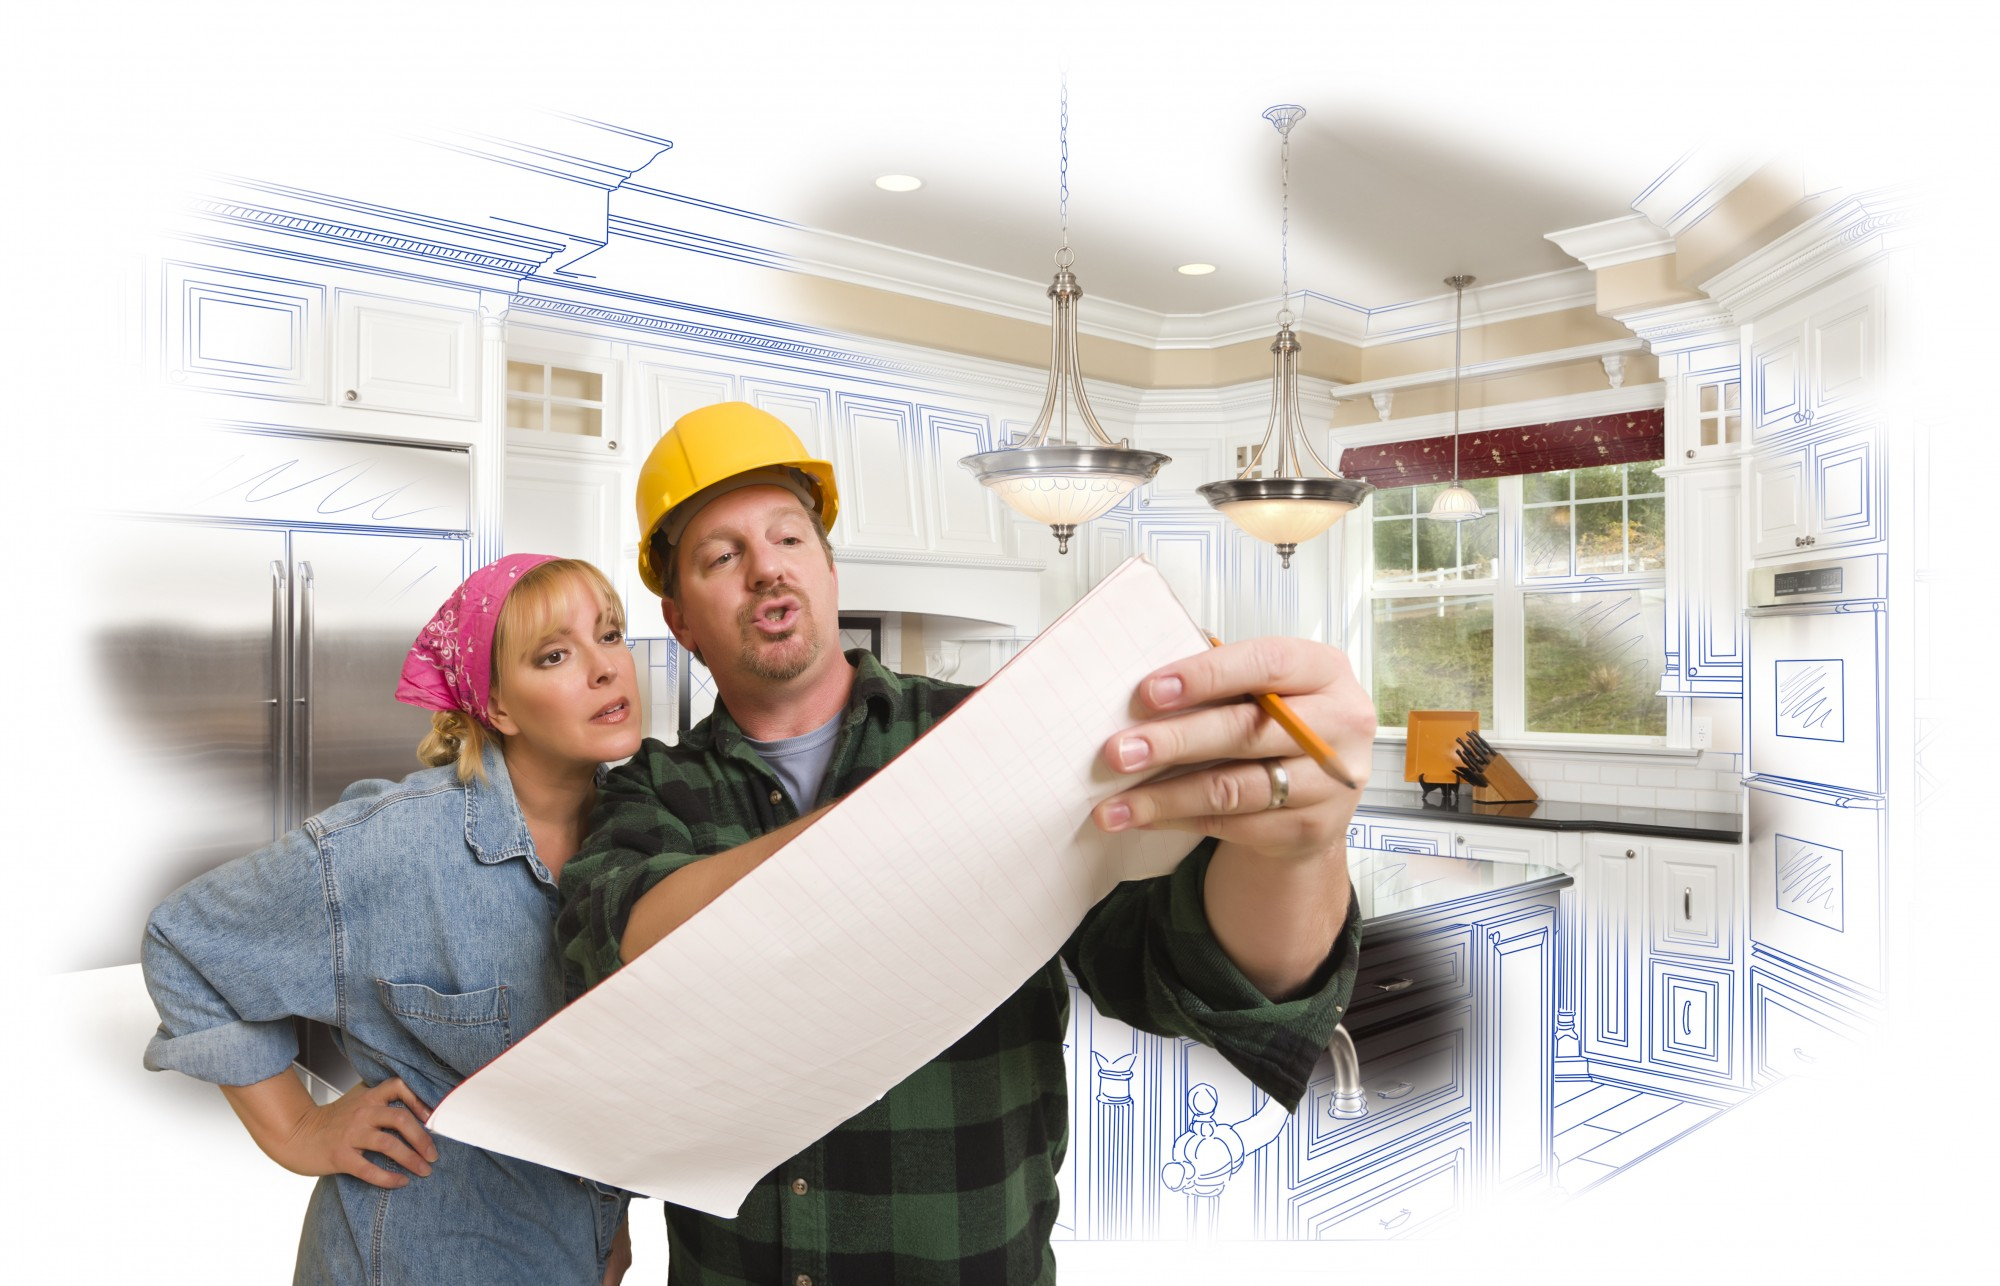 custom home building process tampa luxury homes house plans home plans cool houseplans home floor plans